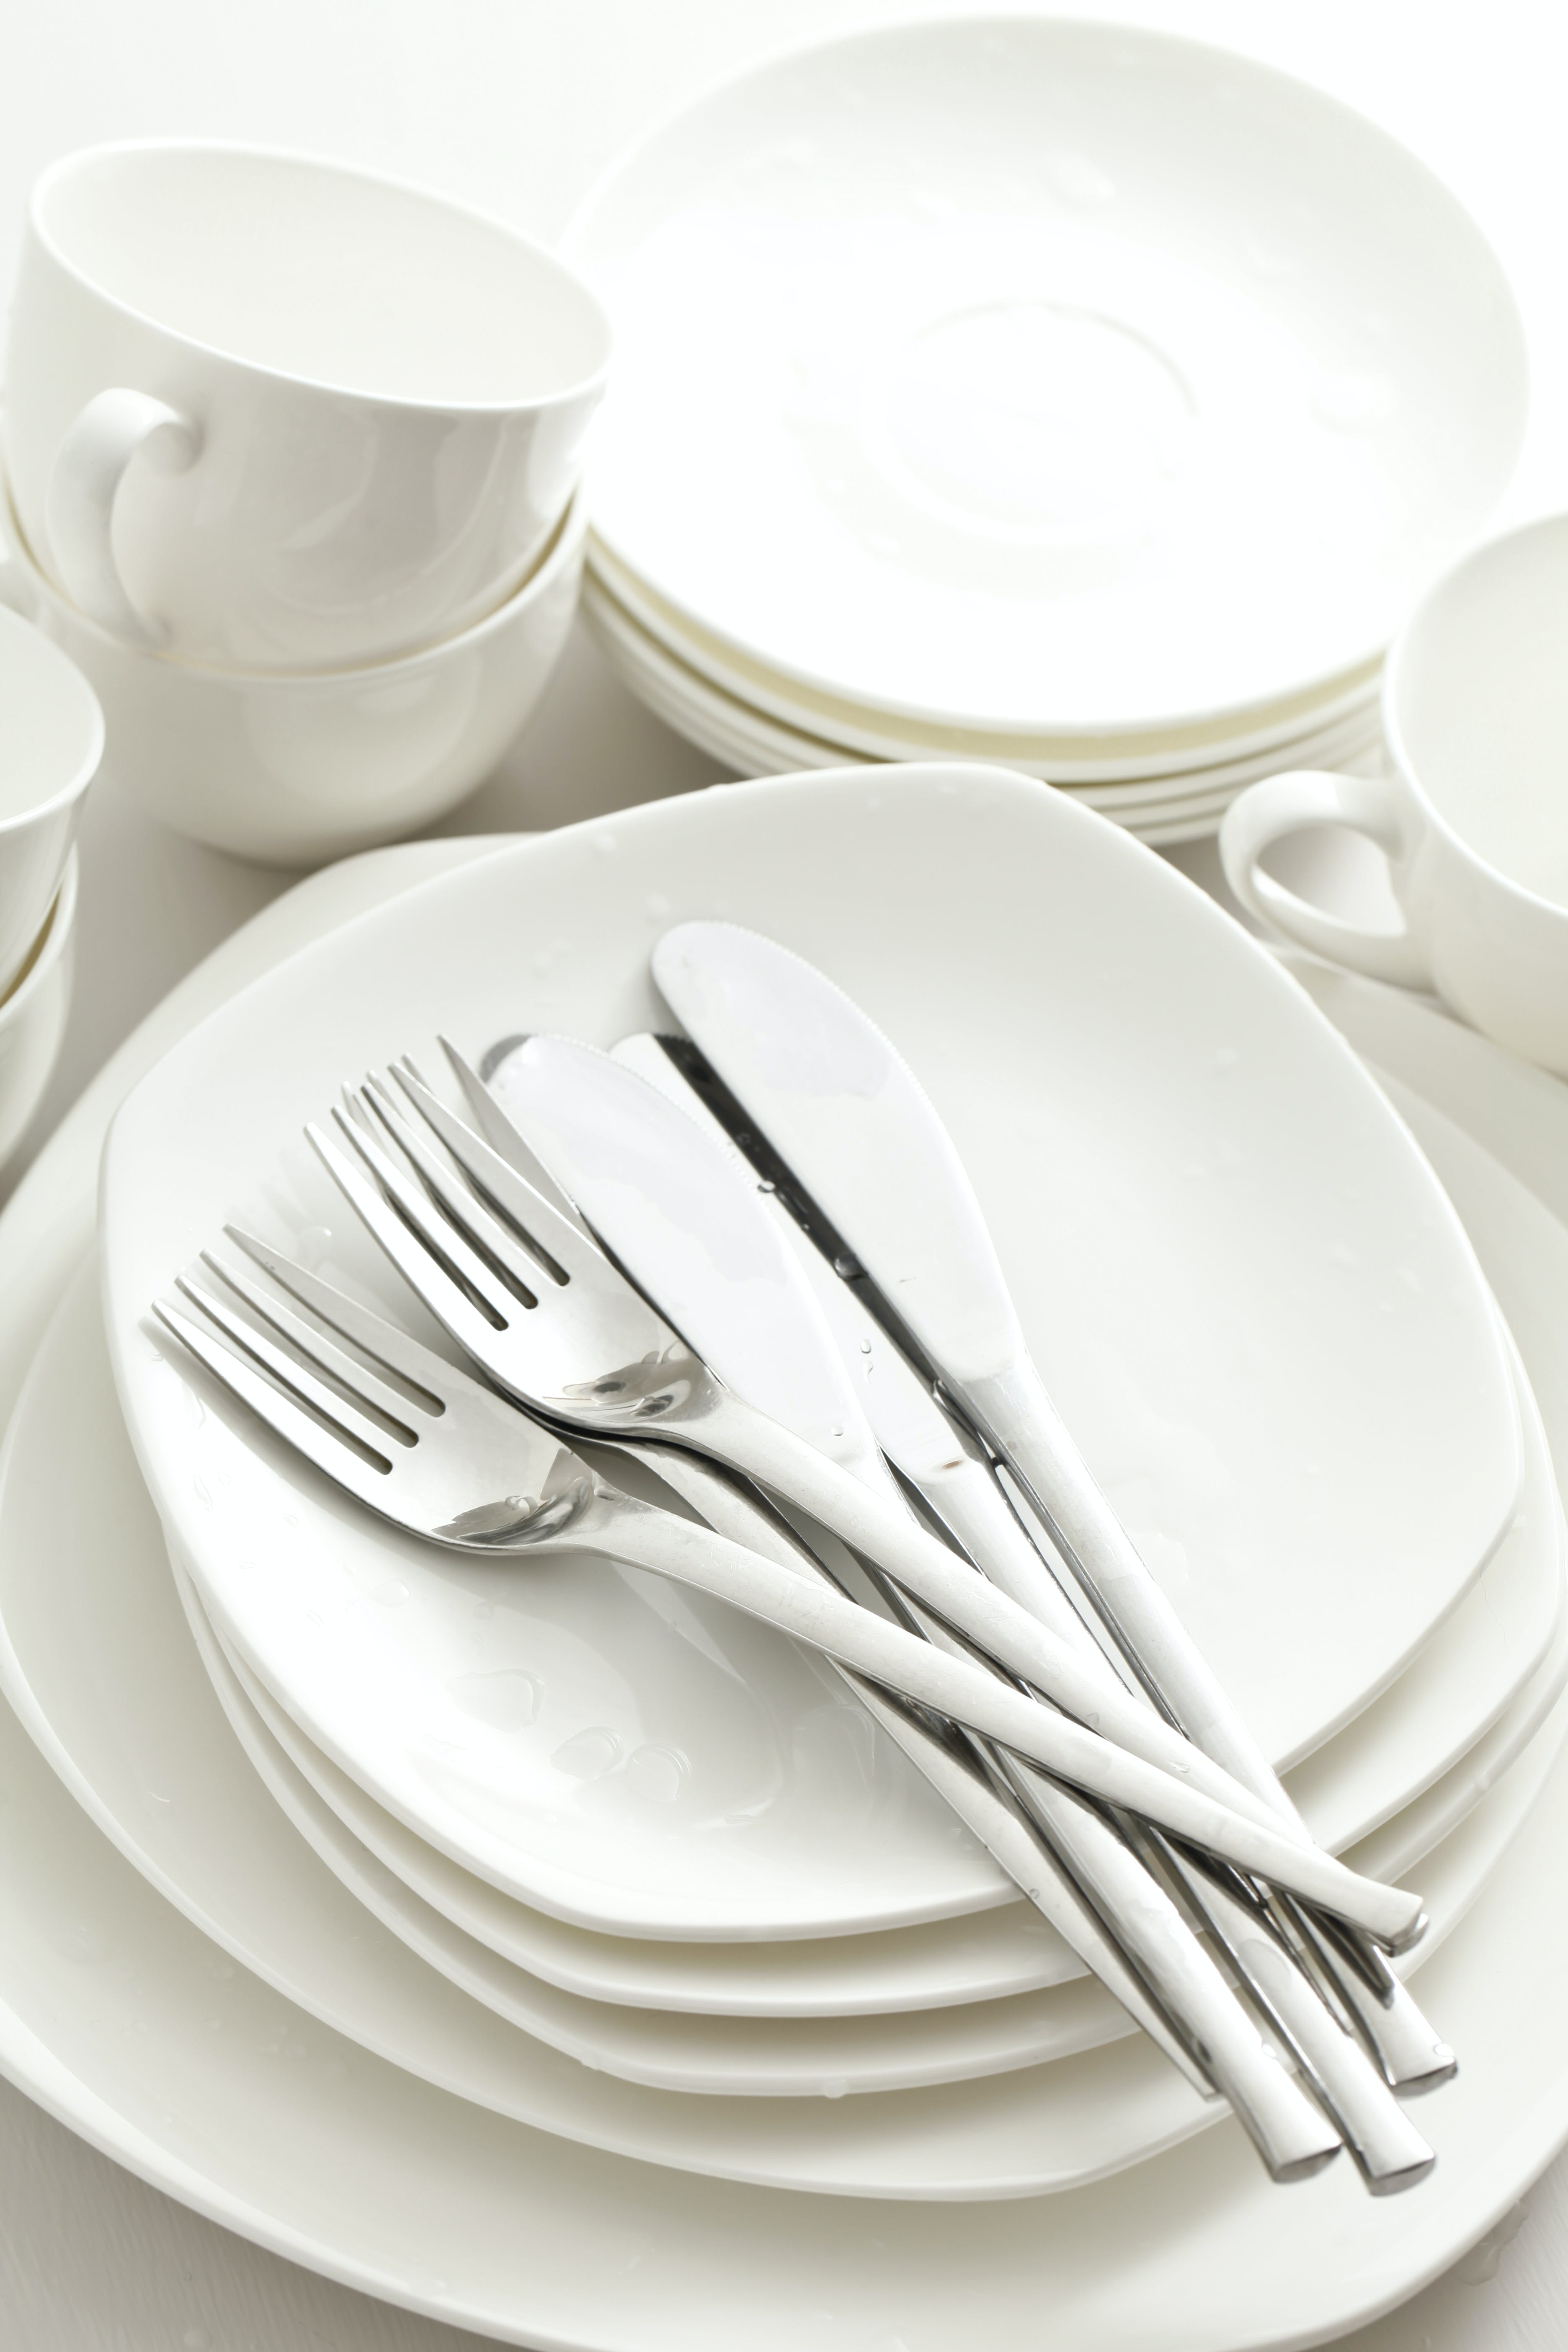 & Commercial Dinnerware Materials Guide | Kinnek